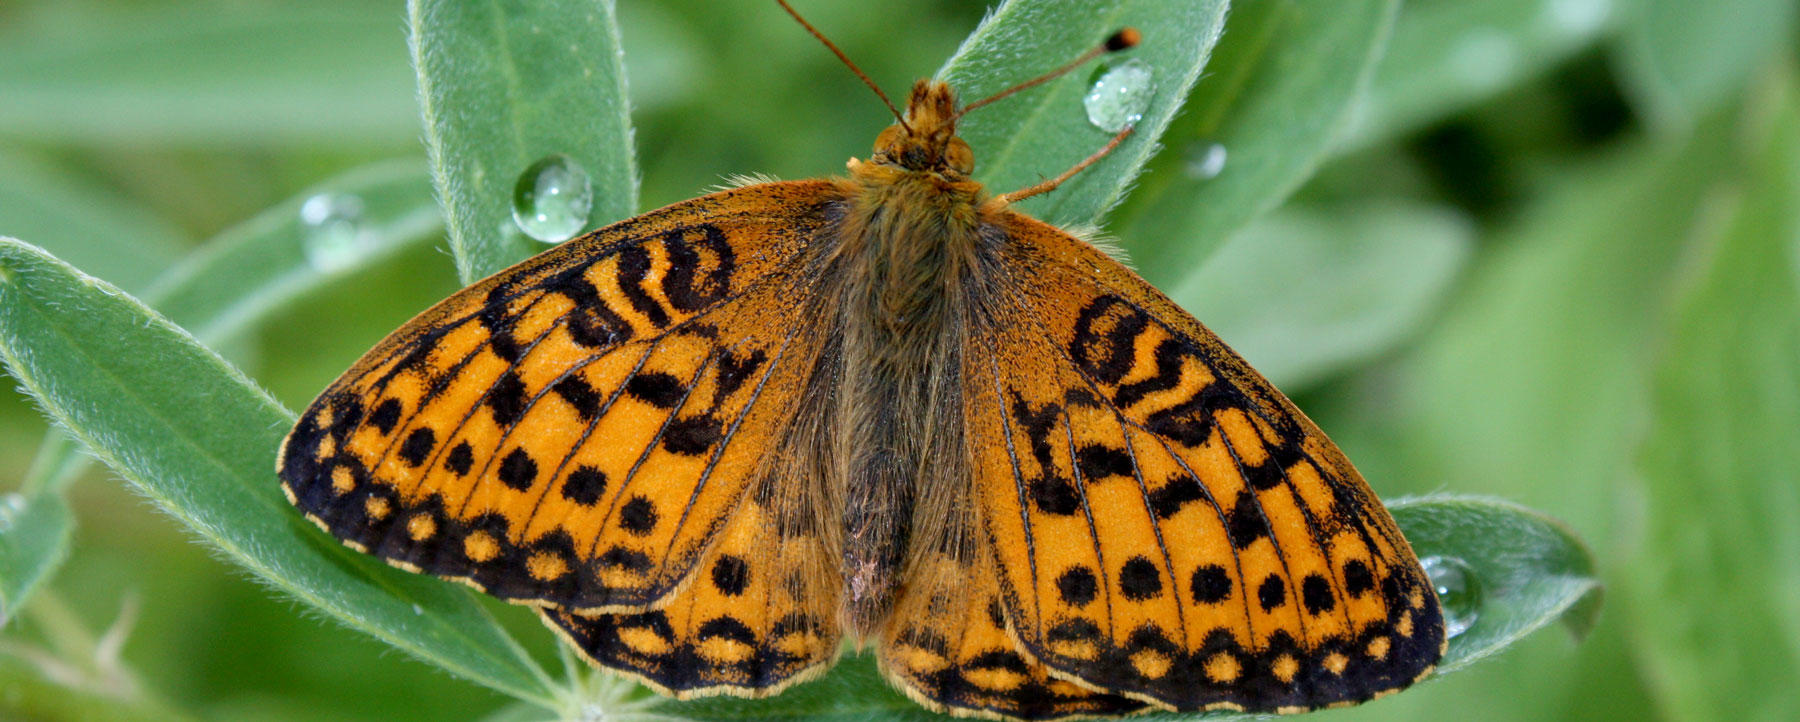 Arctic fritillary (Boloria chariclea) butterfly